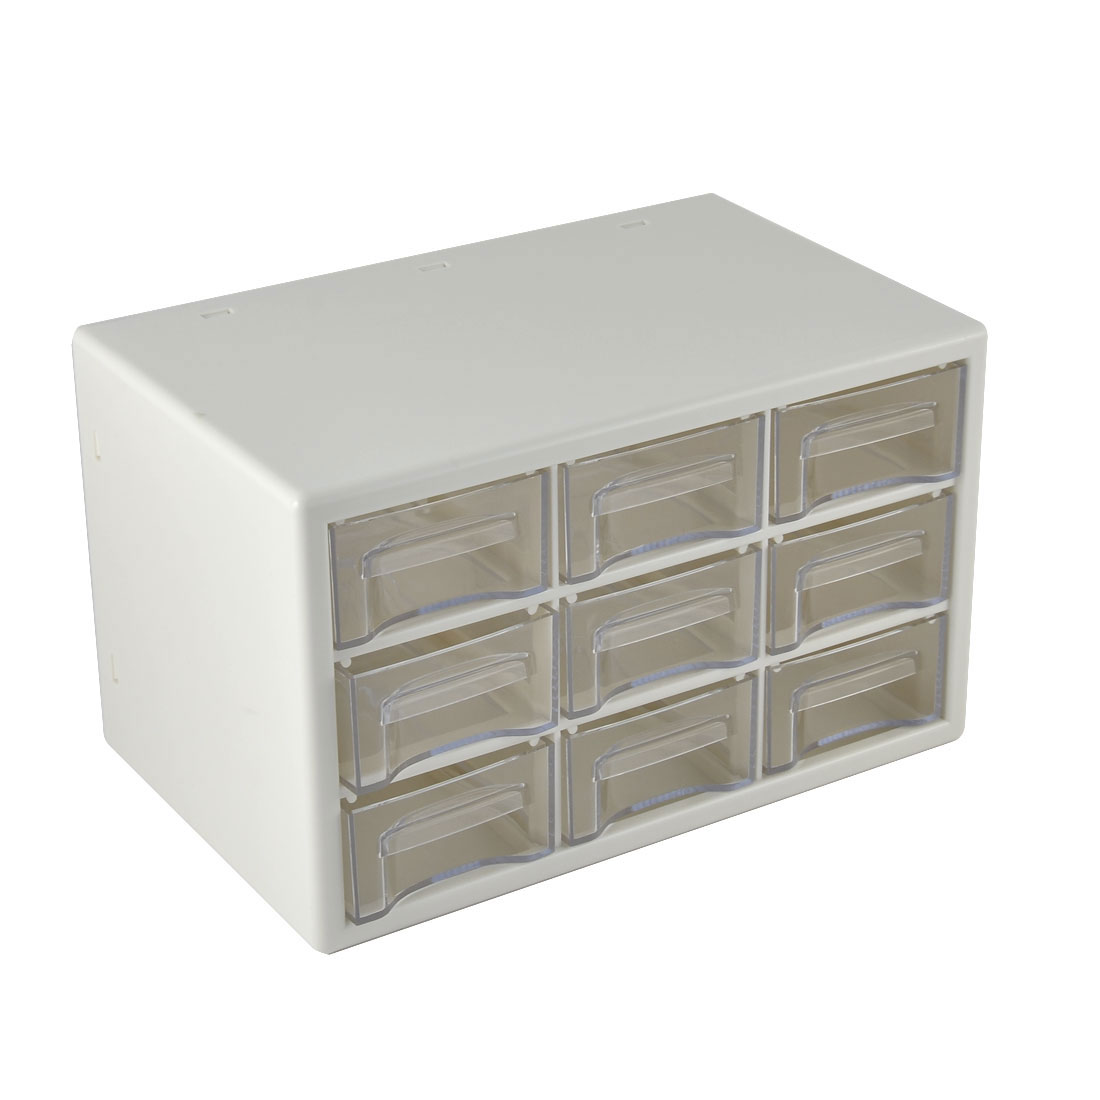 Plastic 9 Compartments Cosmetic Jewelry Cabinet Craft Drawer Box Container Organizer Storage White